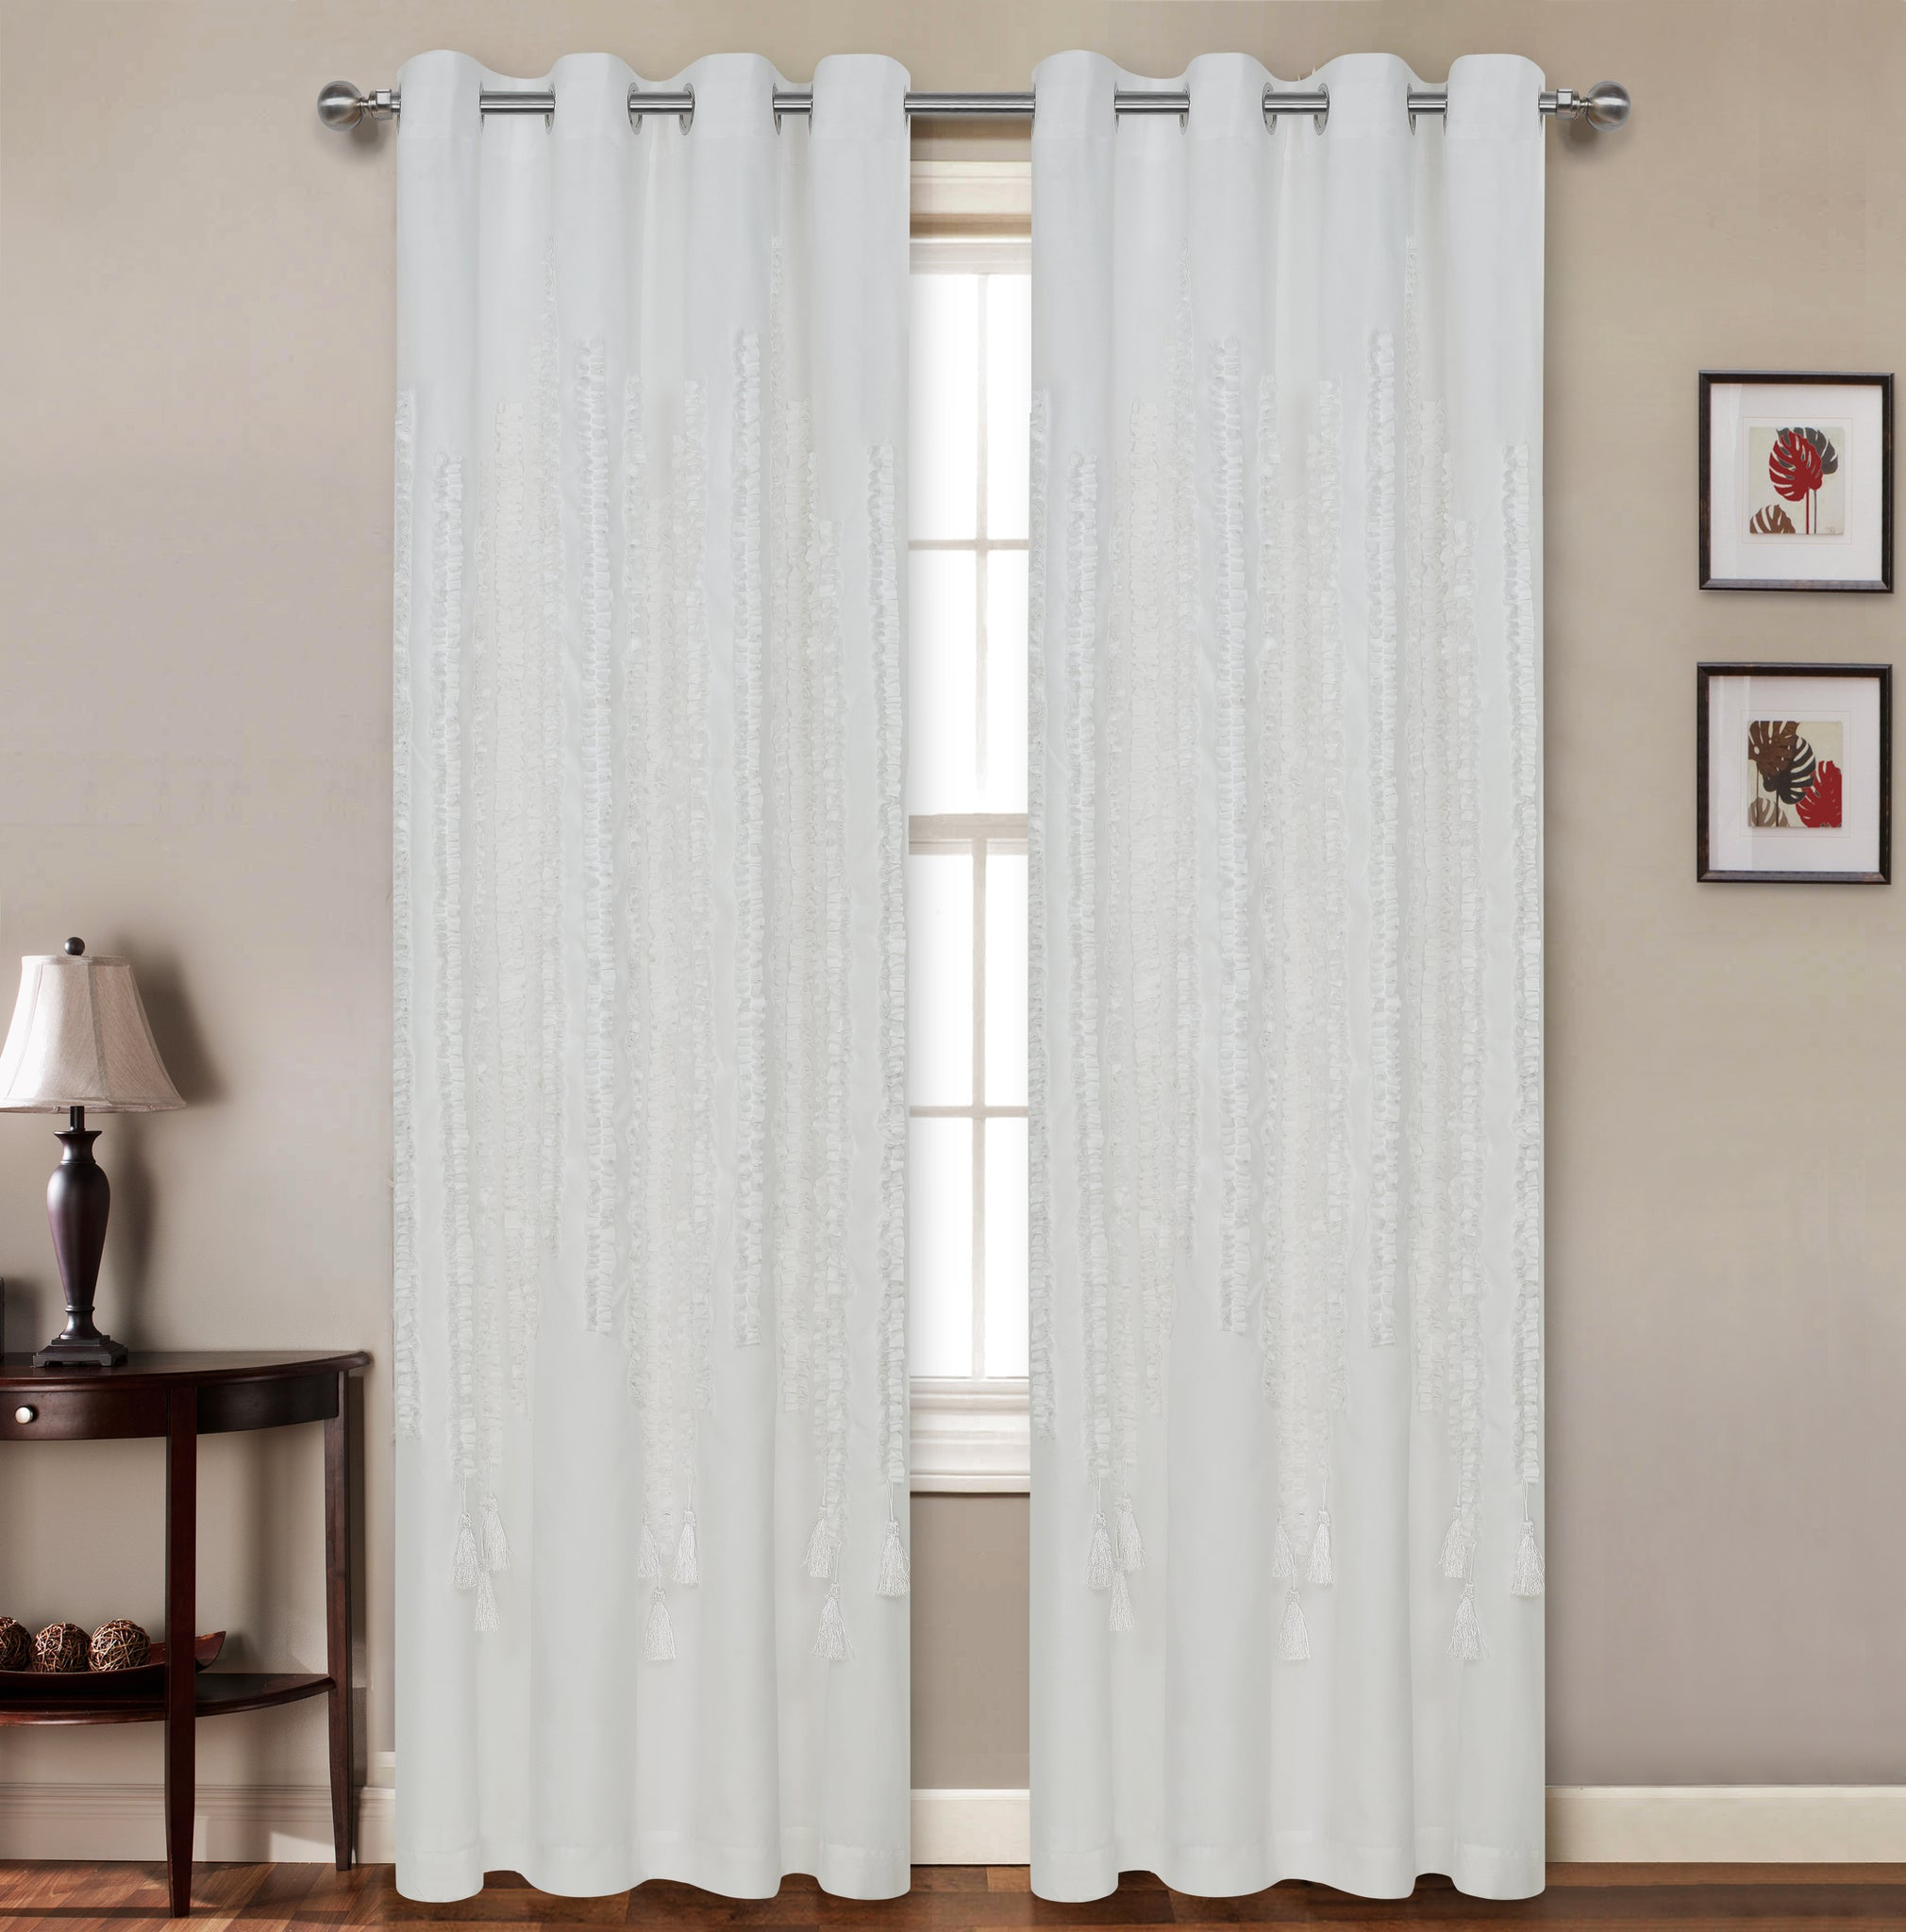 "Taylor 3D Lined Grommet Panel 84"" - - Marburn Curtains"